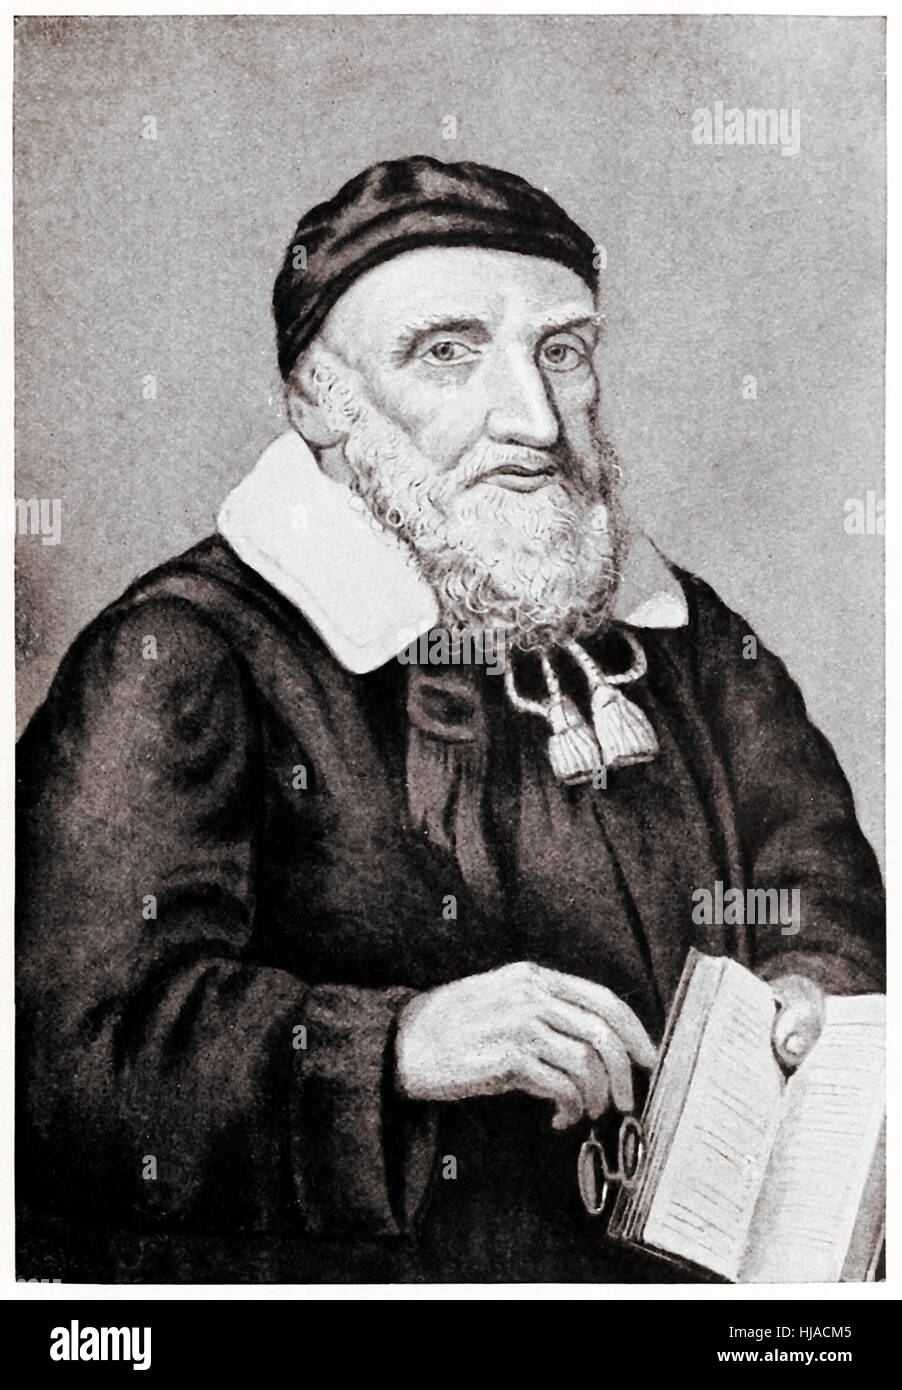 Reverend Richard Mather (1596-1669) first in a line of New England Puritan clergymen and leader of New England Congregationalism - Stock Image